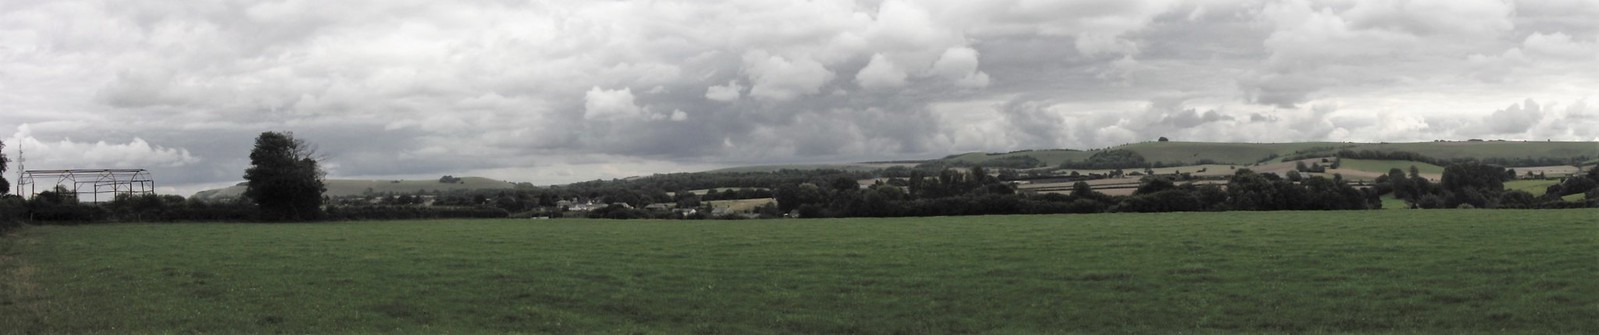 Panoramic View from Horse Hill, above Ludwell SWC Walk 251 Tisbury Circular via Ludwell and Berwick St. John